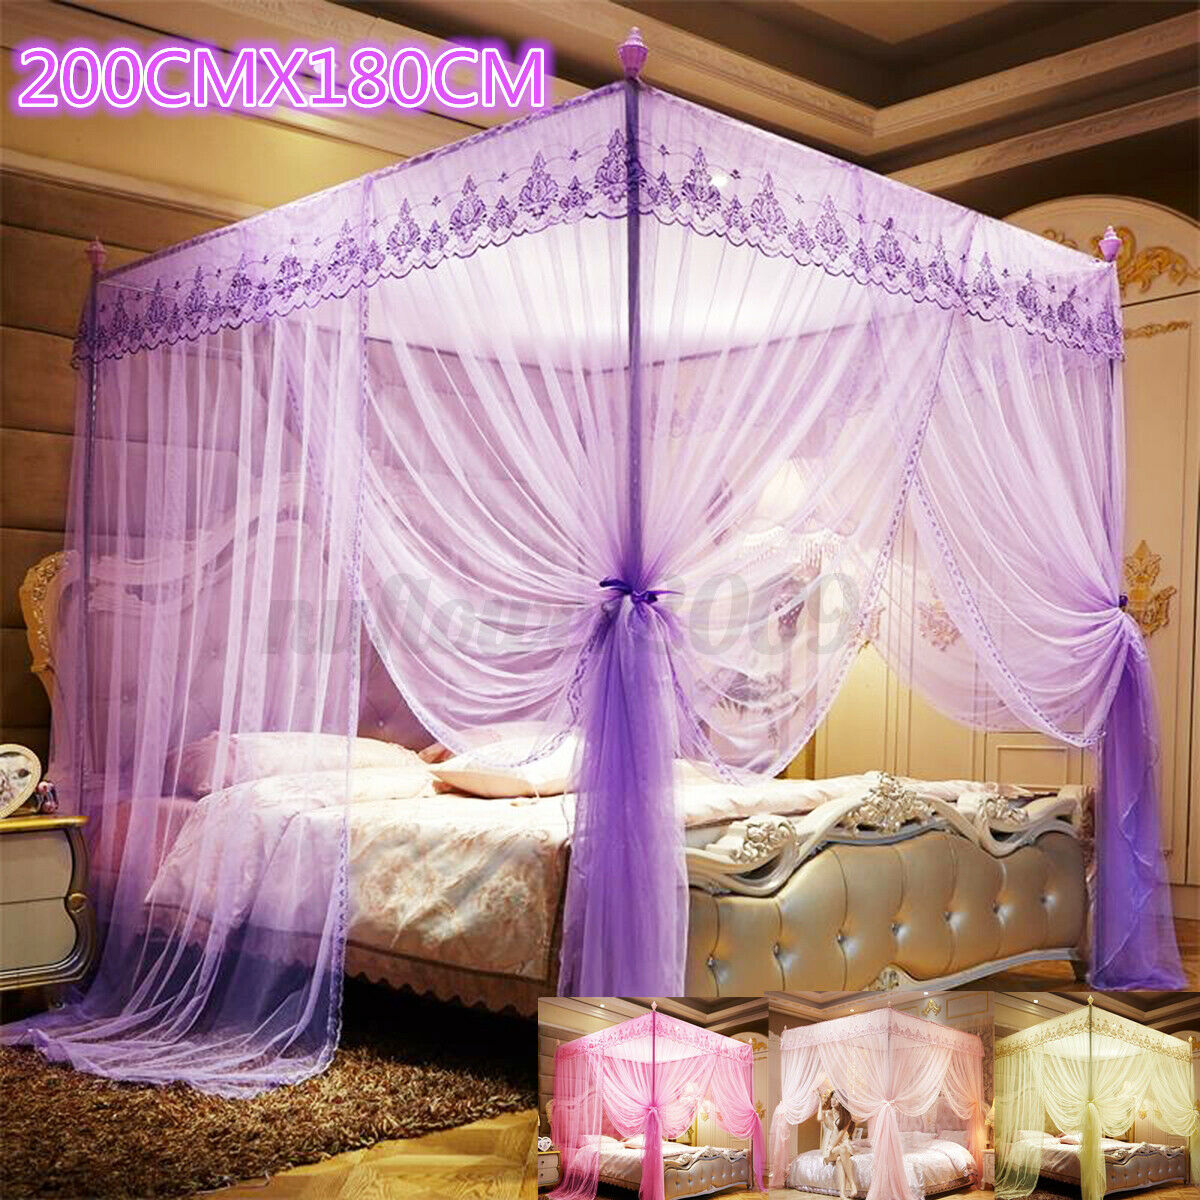 Mengersi 4 Corners Post Bed Canopy Bed Curtains Bed Frame Canopies Net Full For Sale Online Ebay